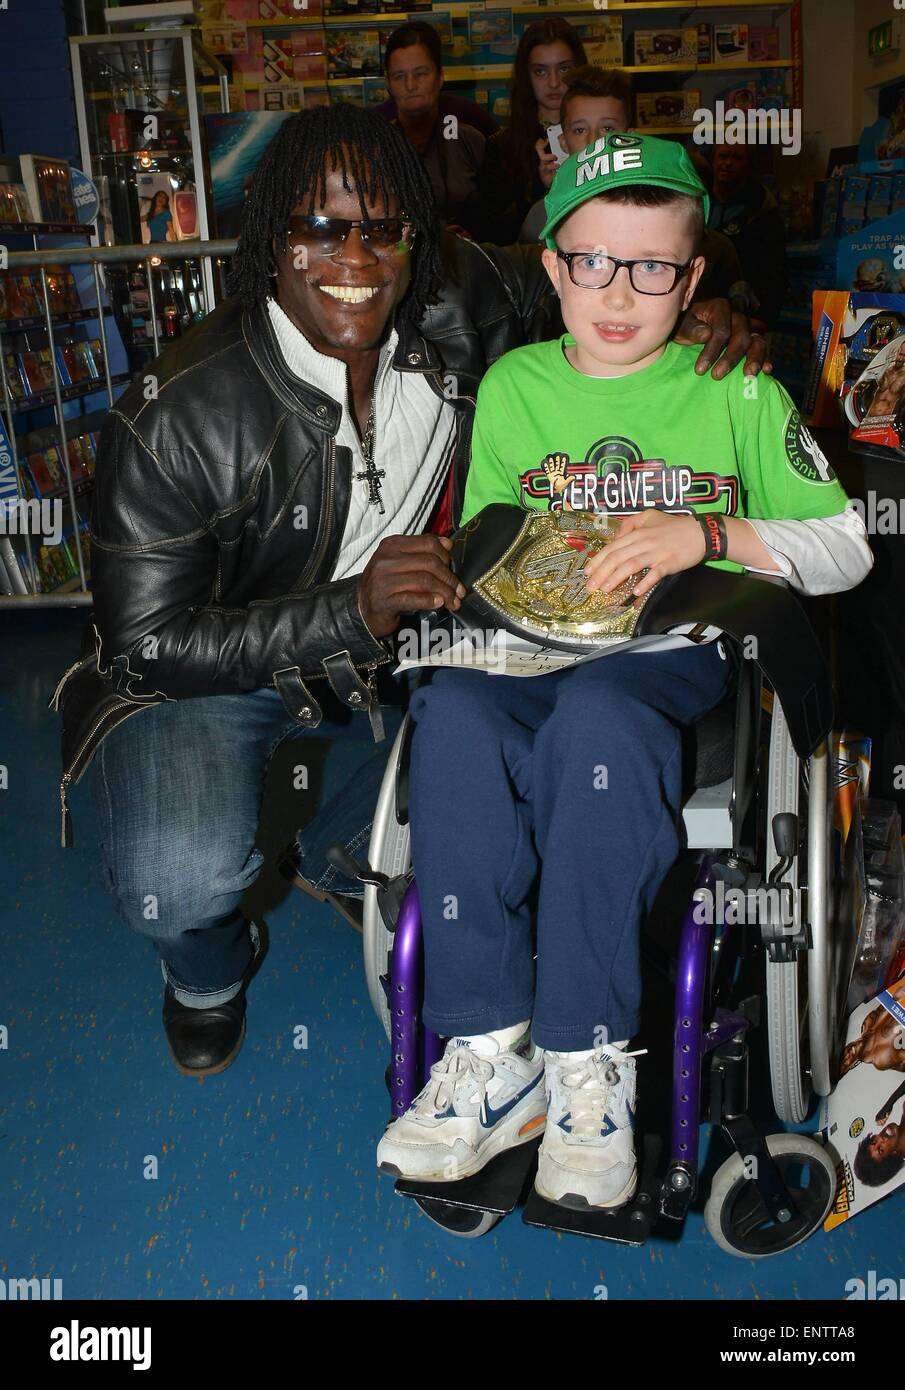 Stunning Smyths Stock Photos  Smyths Stock Images  Alamy With Extraordinary Wwe Superstar Rtruth At A Signing In Smyths Toystore In Jervis Street  Ahead Of With Attractive A New Garden Also Olive Garden Standish In Addition Modern Garden Office And Reigate Garden Centre As Well As Garden Hose With Reel Additionally Garden Structures Ltd From Alamycom With   Extraordinary Smyths Stock Photos  Smyths Stock Images  Alamy With Attractive Wwe Superstar Rtruth At A Signing In Smyths Toystore In Jervis Street  Ahead Of And Stunning A New Garden Also Olive Garden Standish In Addition Modern Garden Office From Alamycom